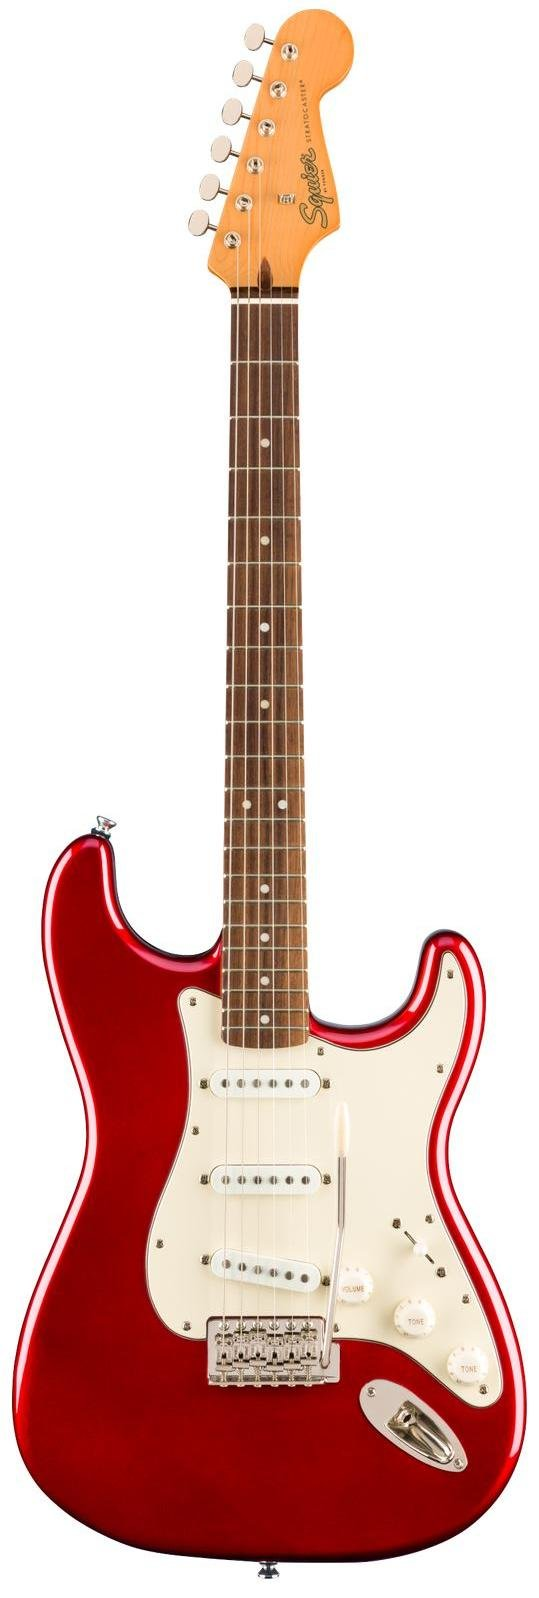 Squier Classic Vibe '60s Stratocaster, Laurel Fingerboard - Candy Apple